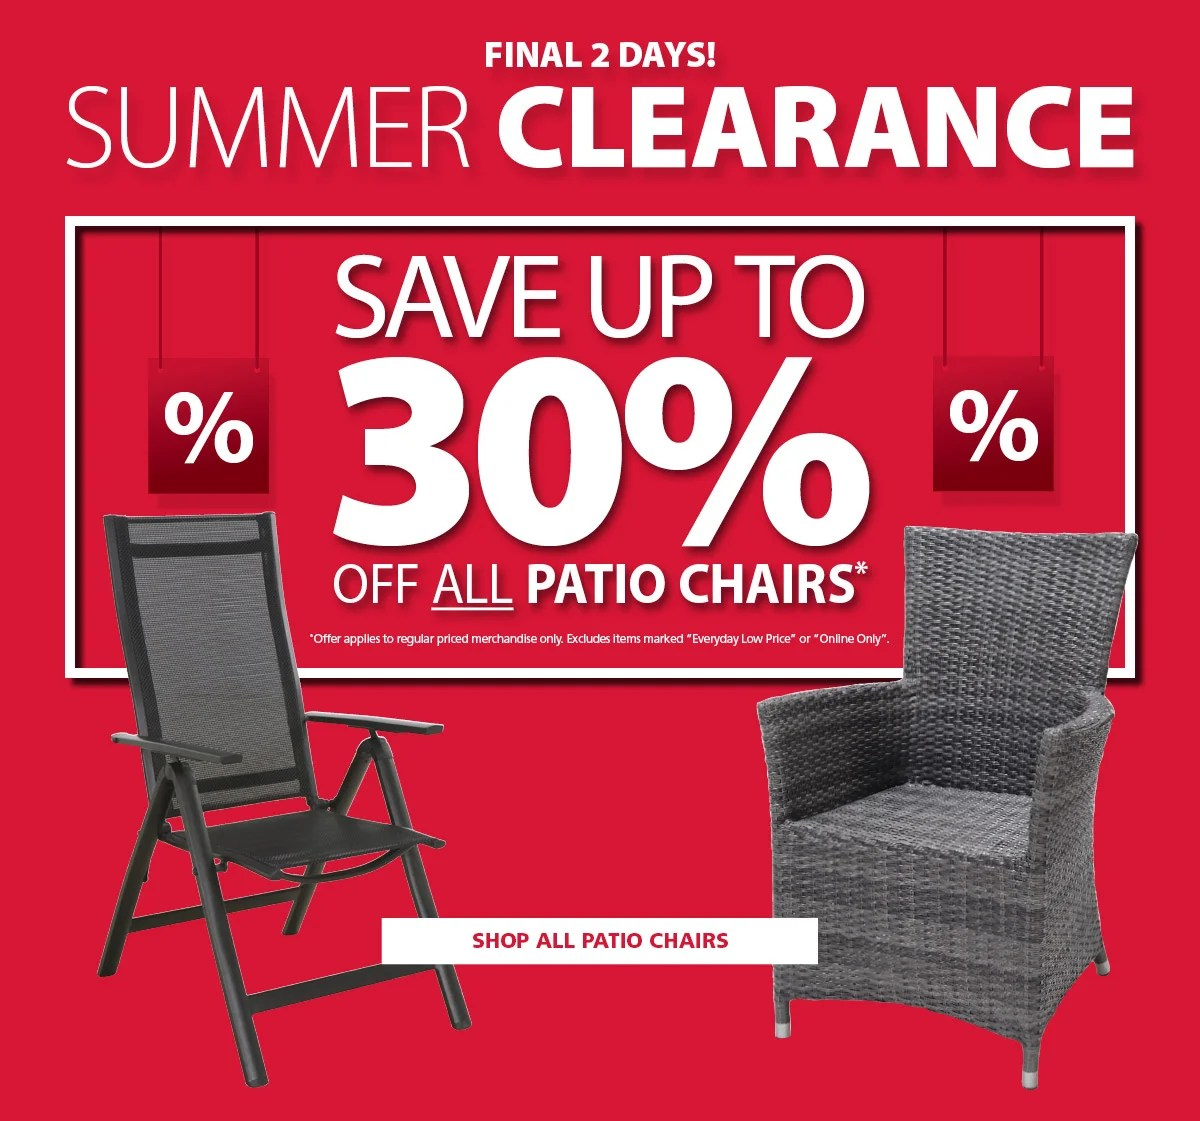 summer clearance save up to 20 70 off